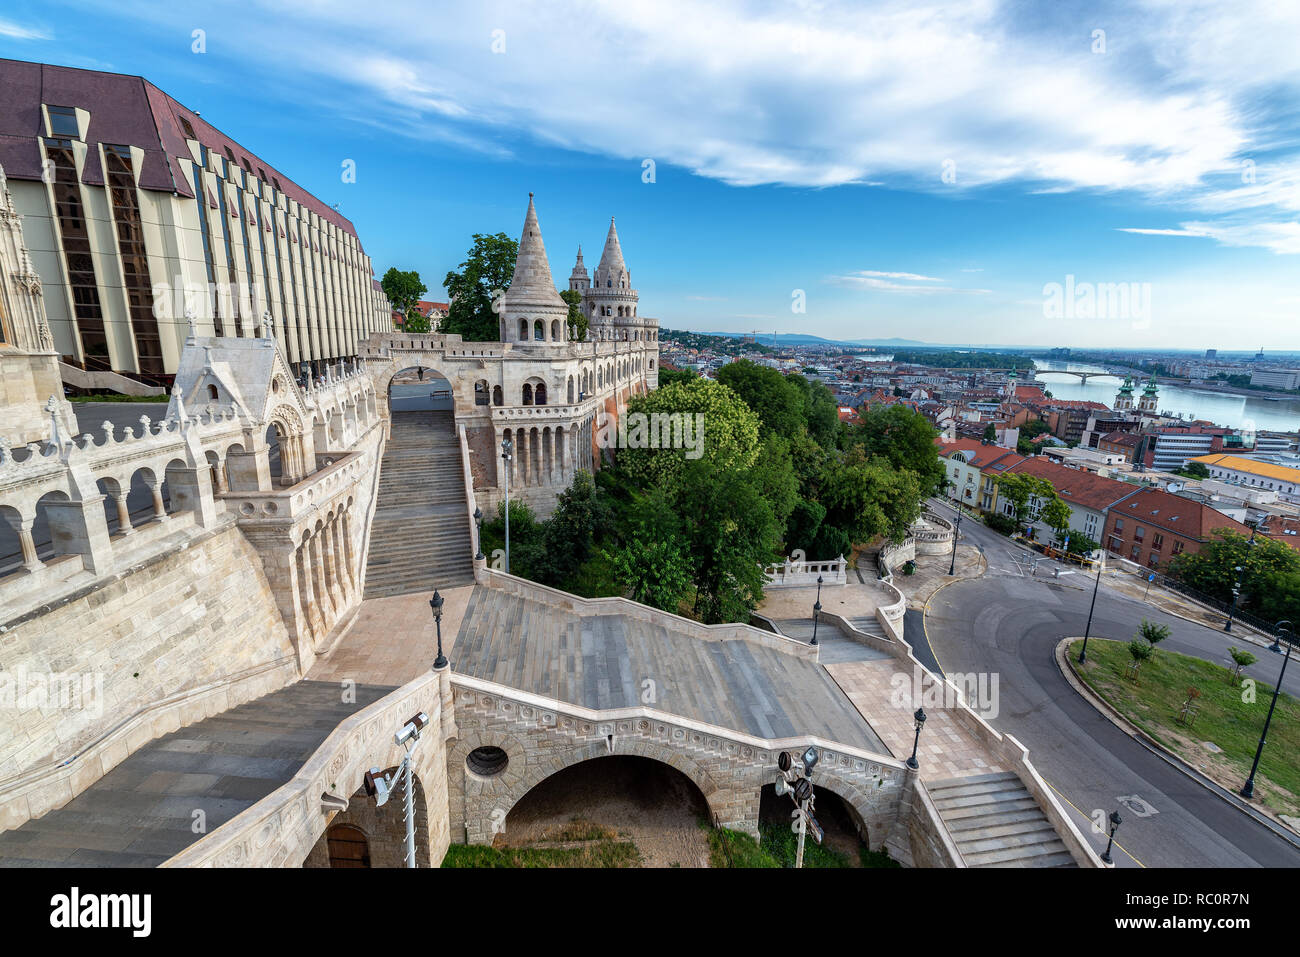 Cityscape view of Budapest, Hungary and Fishermans Bastion - Stock Image